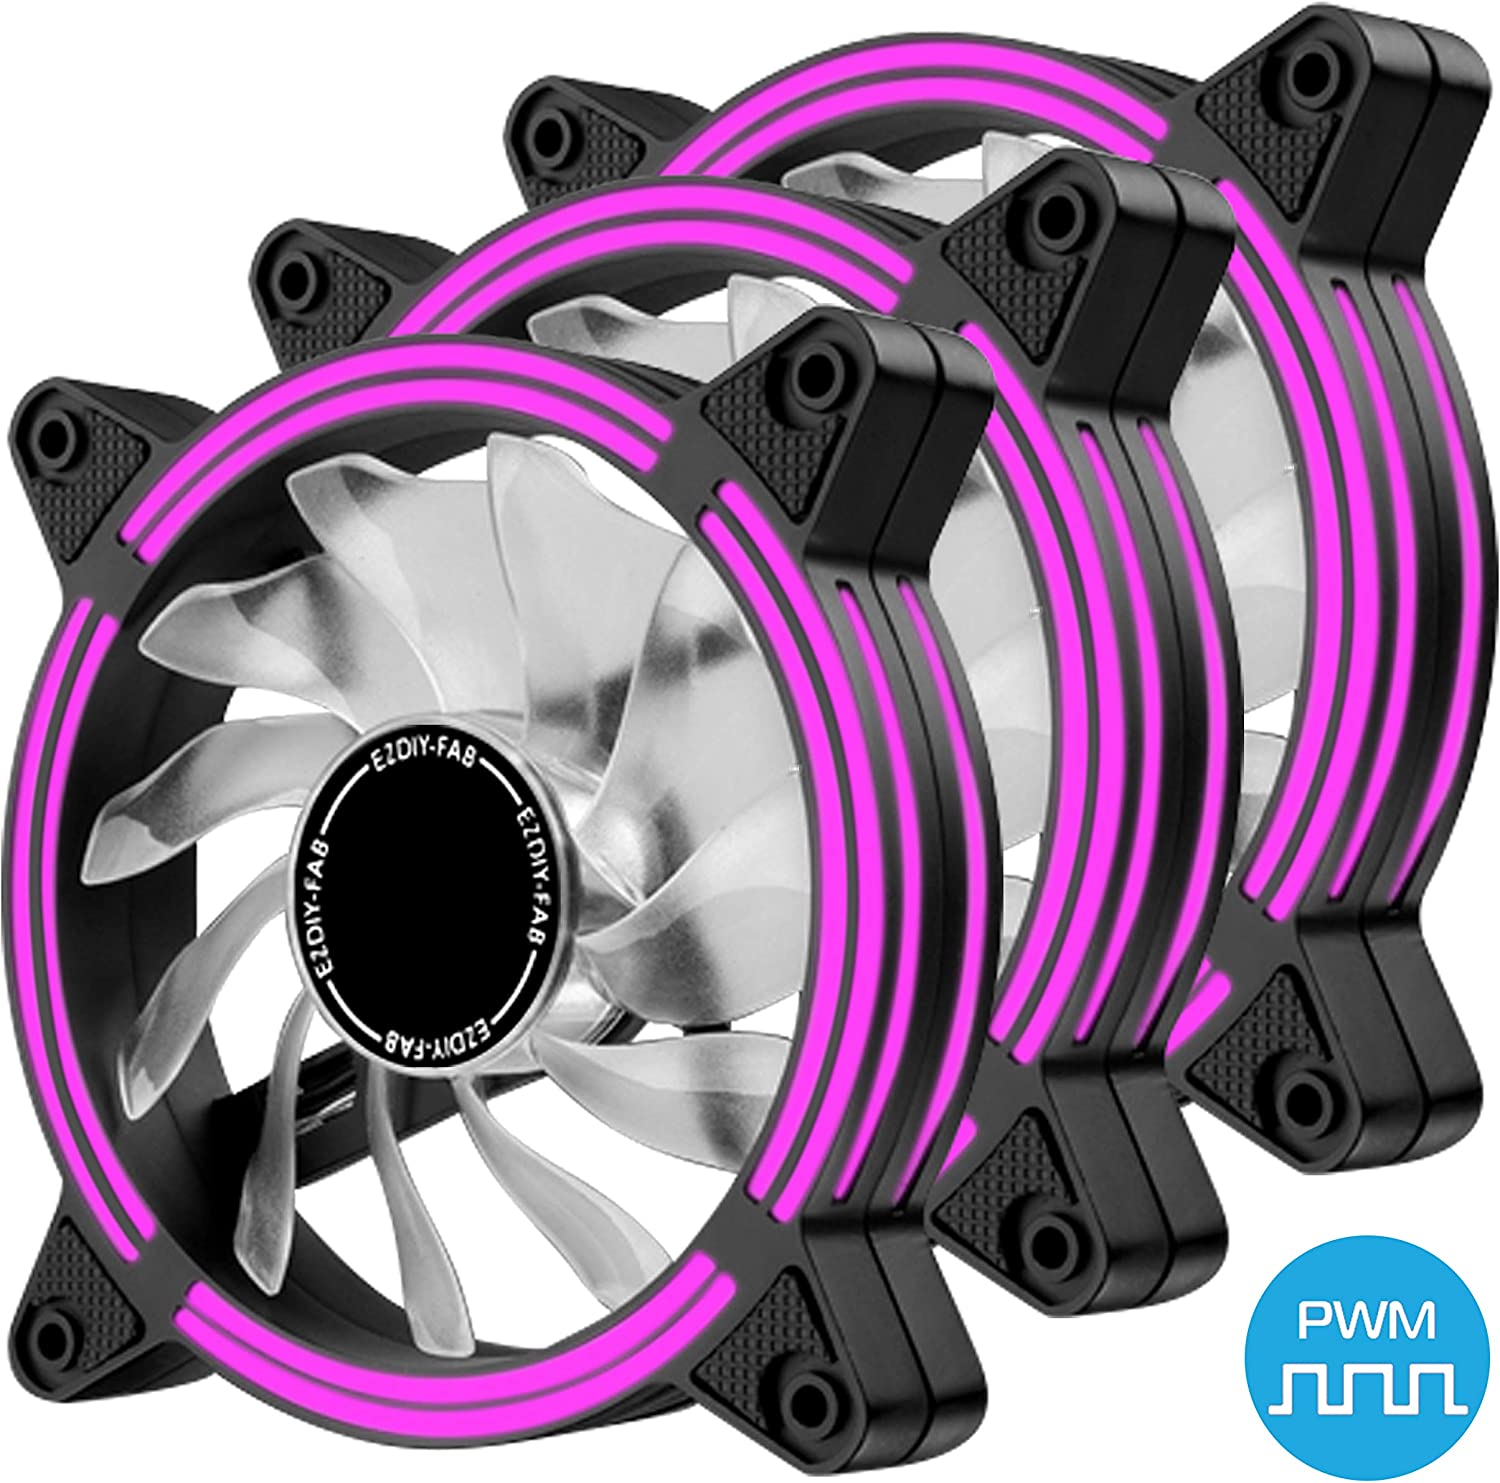 EZDIY-FAB 120mm PWM Purple LED Fan, Dual-Frame LED Case Fan for PC Cases, High Airflow Quiet,CPU Coolers, and Radiators,4-Pin-3-Pack